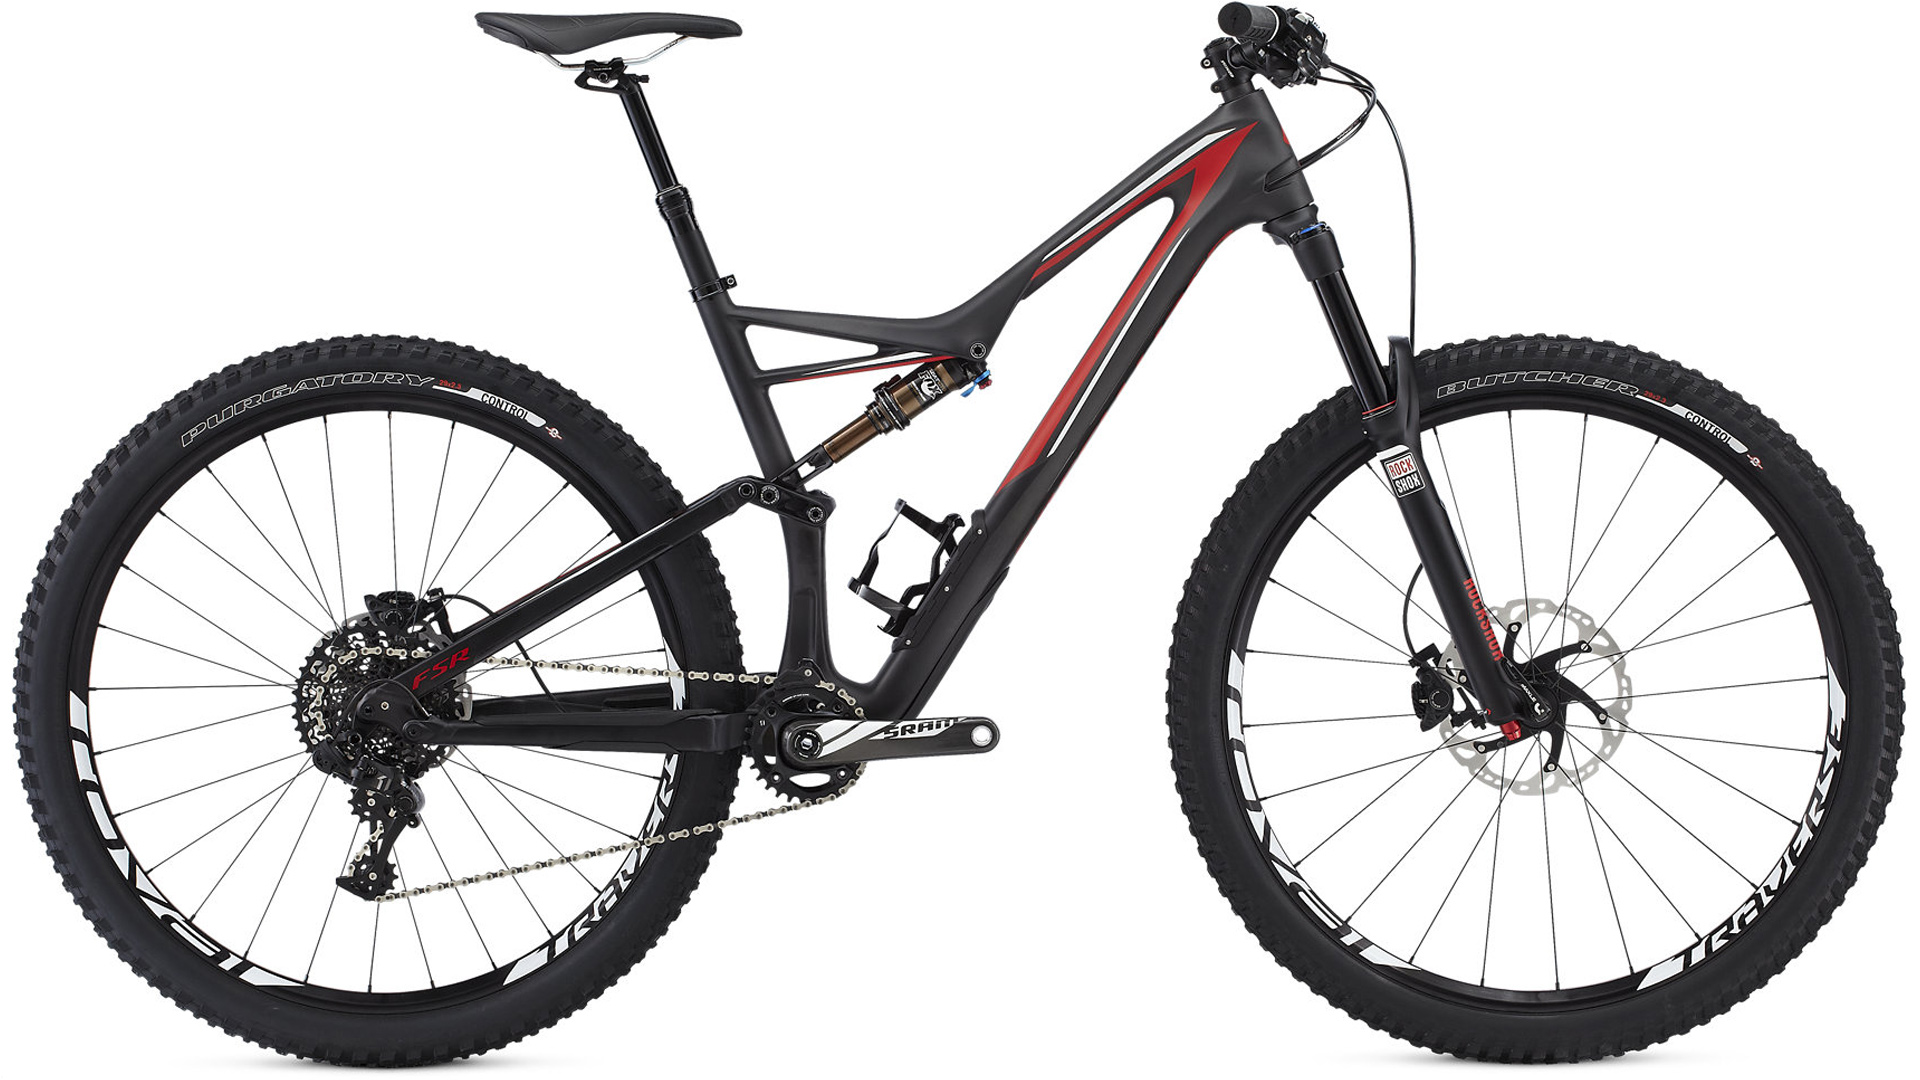 Campana Radsport Specialized Stumpjumper FSR Expert 29